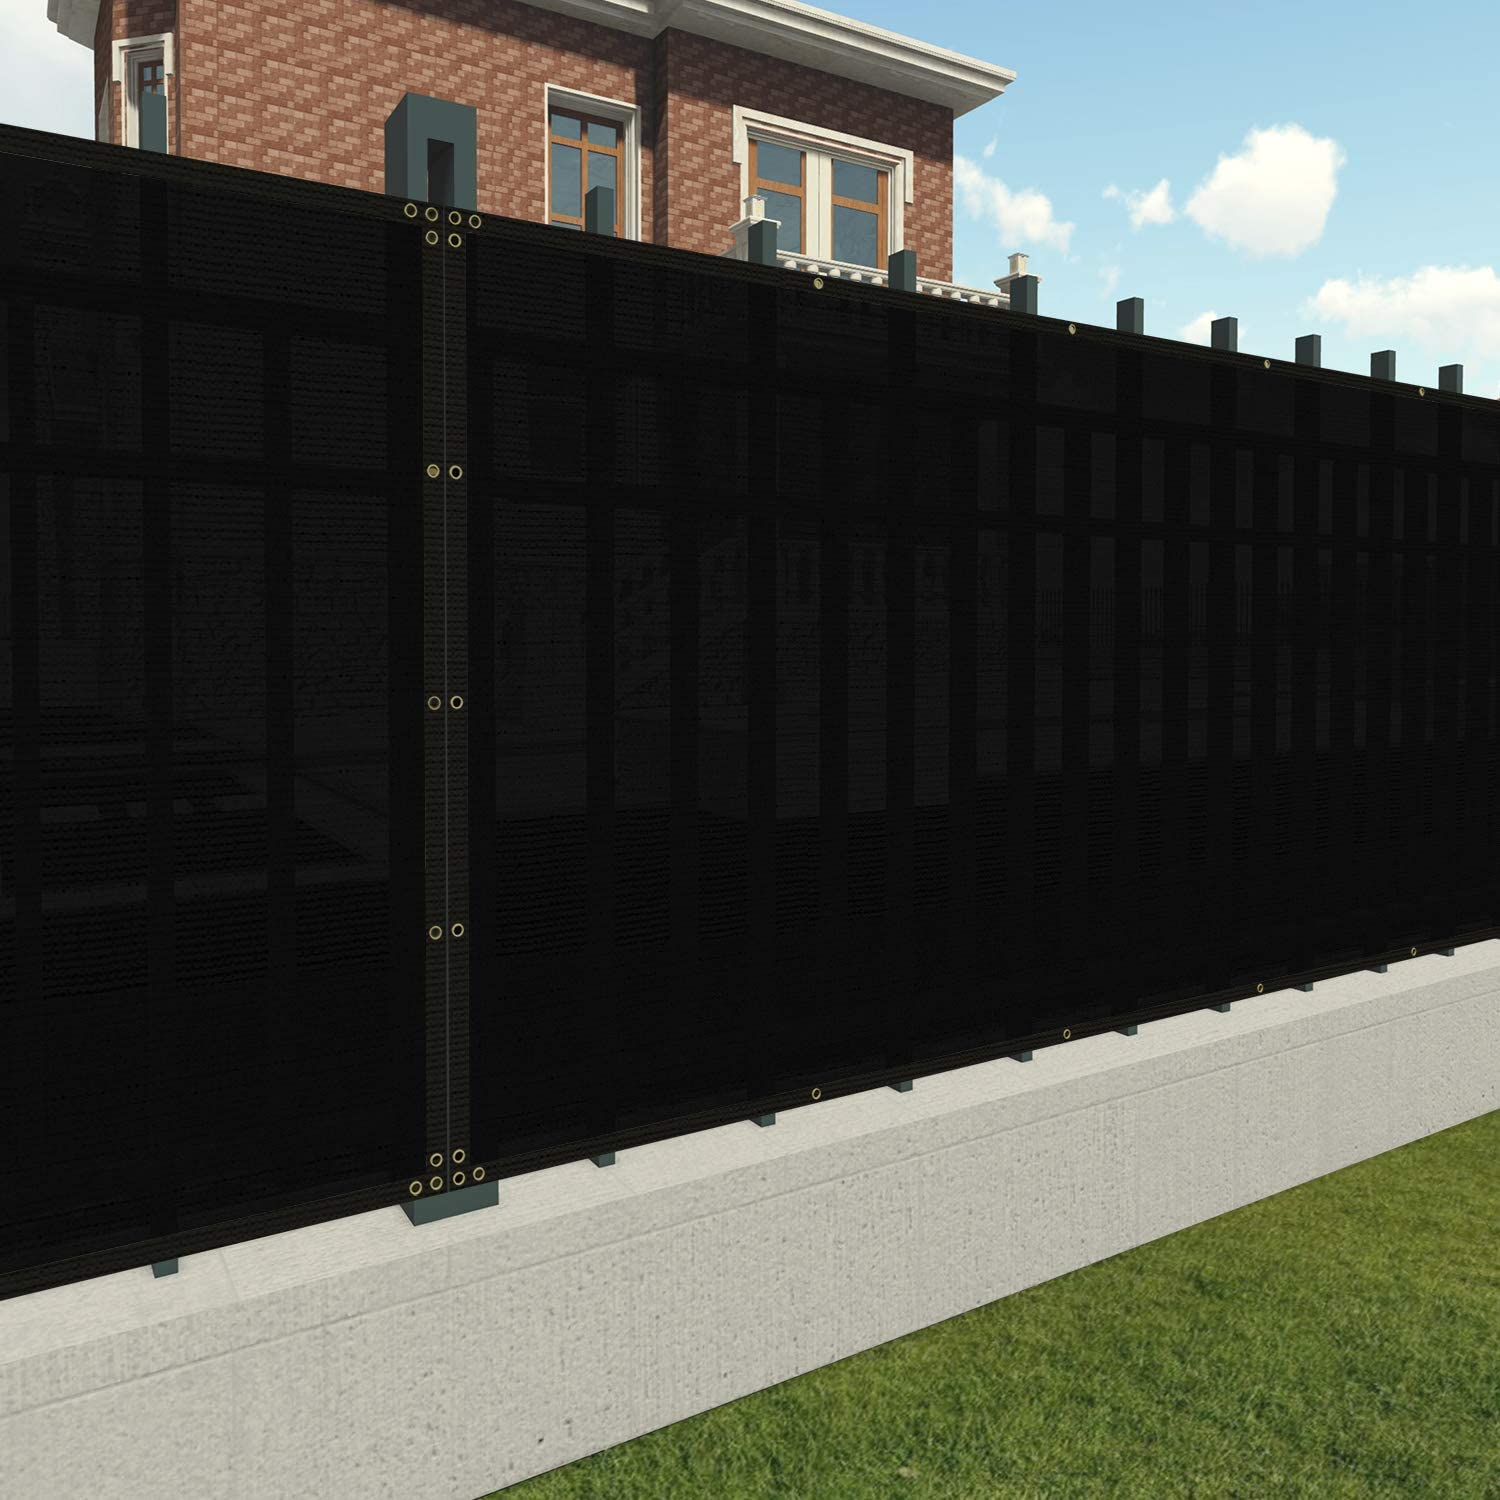 Max 75% OFF Patio Paradise 8' x 12' Privacy in Black Courier shipping free shipping Fence Screen Commercia